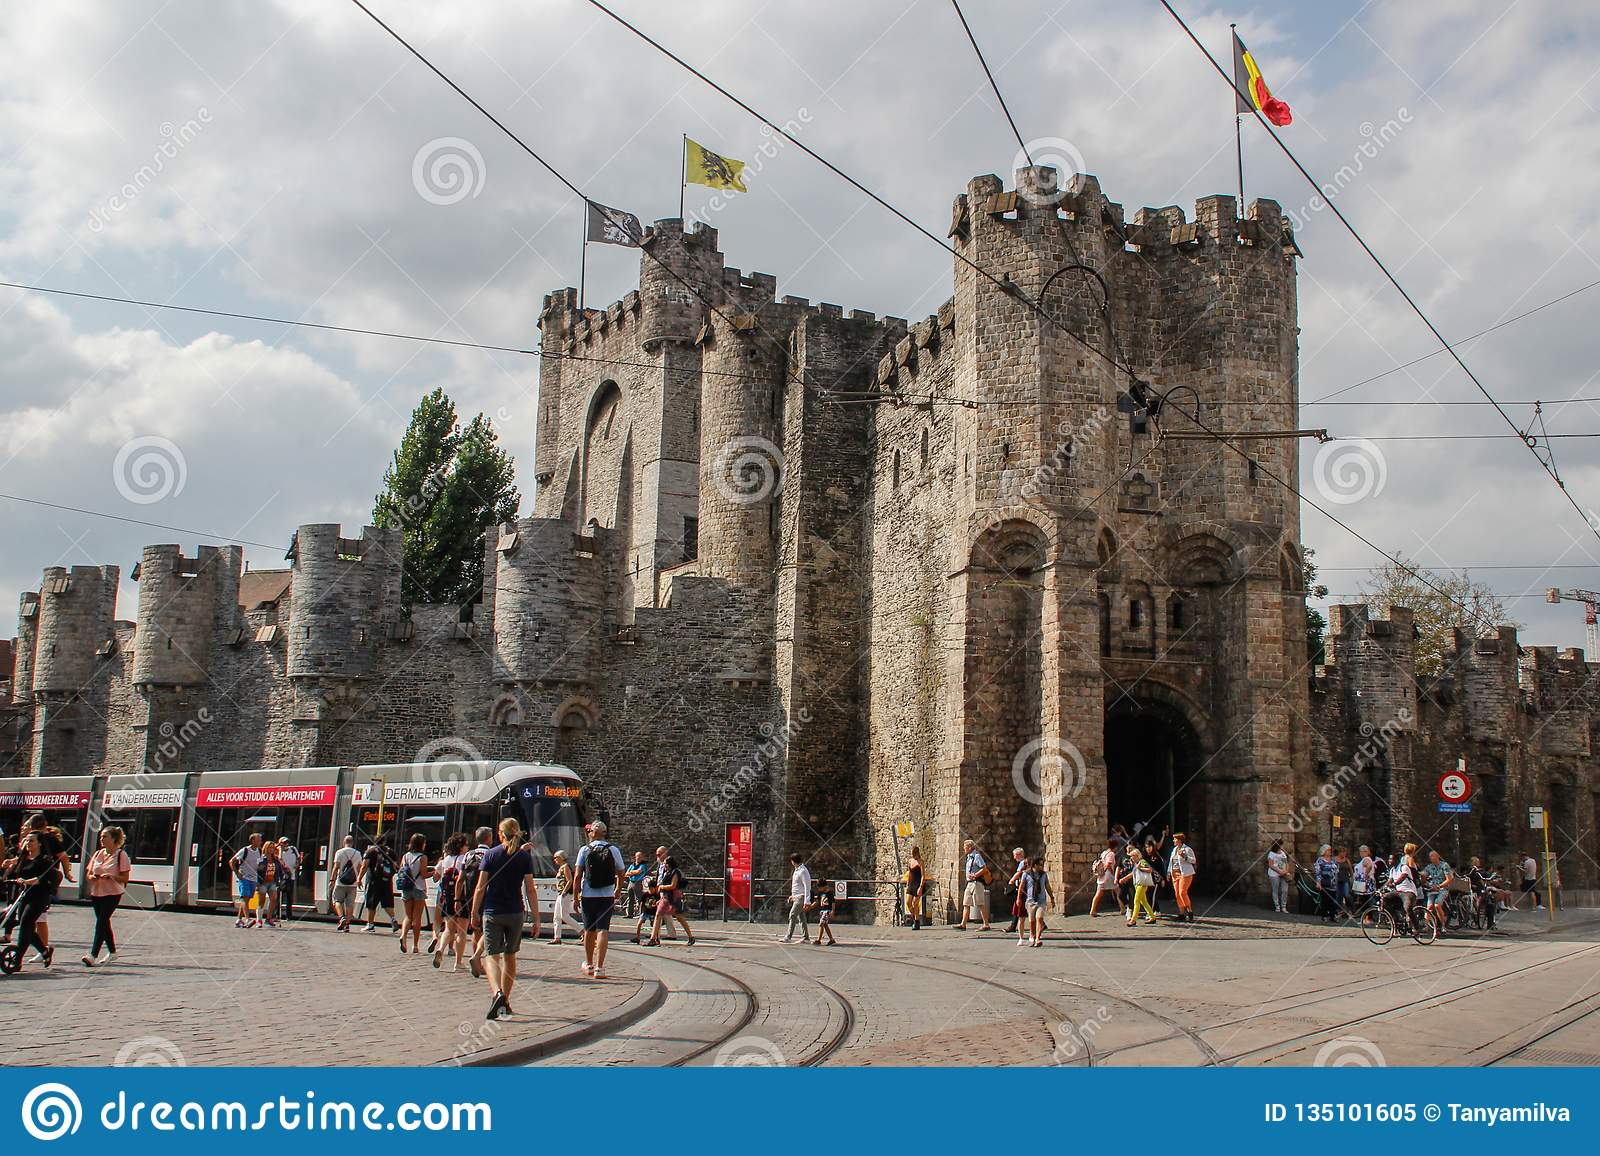 Medieval castle fortress in the city center